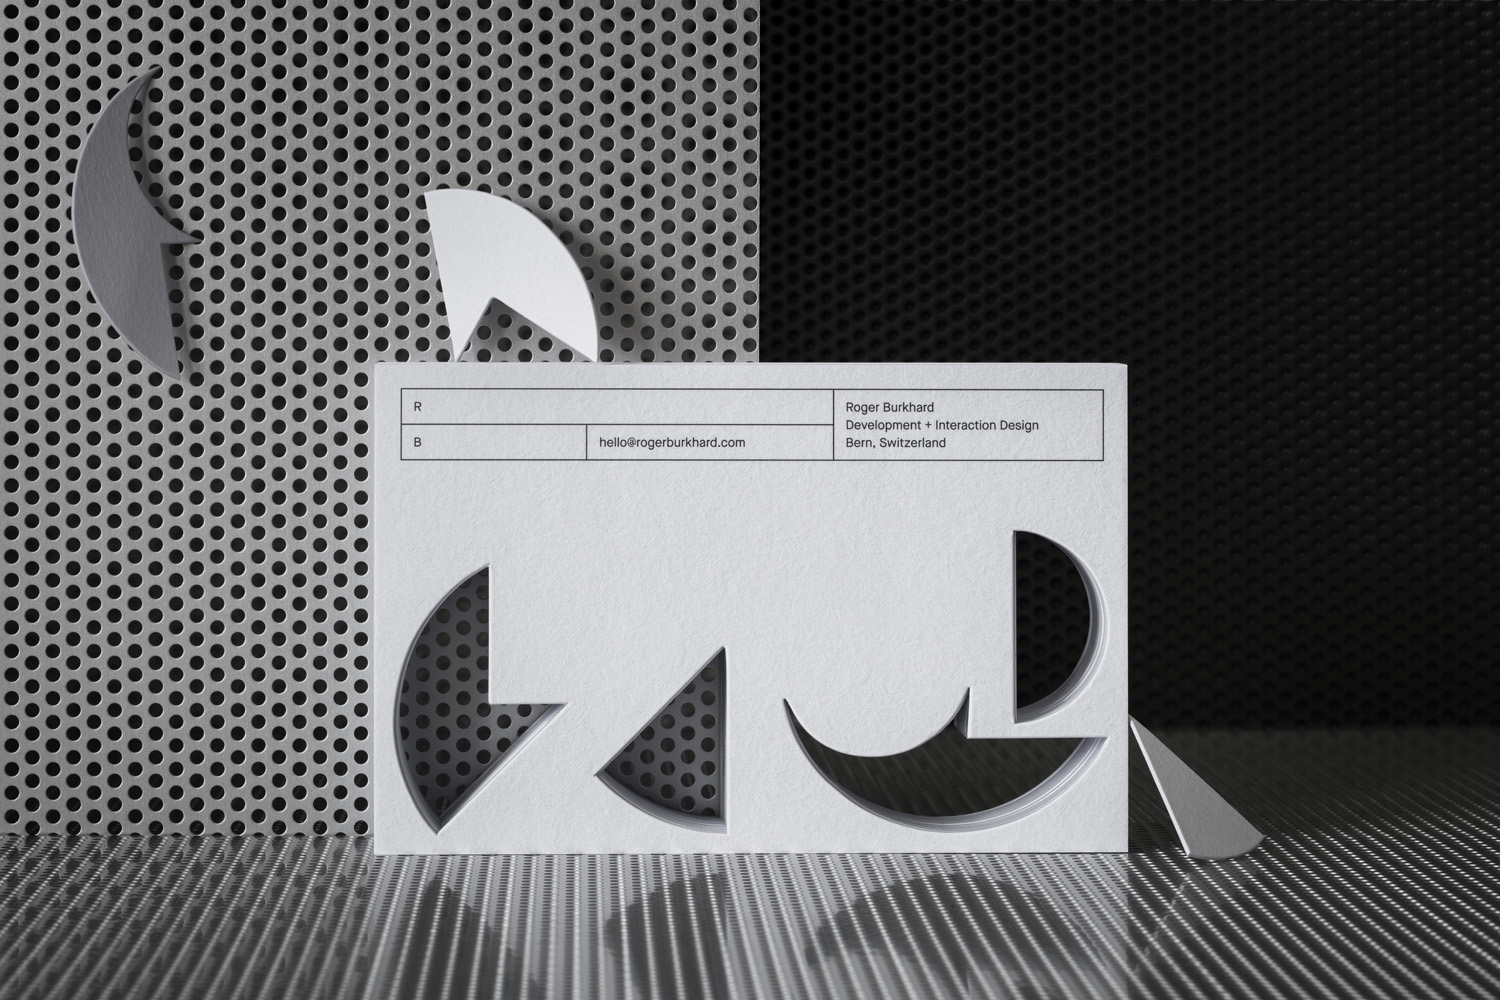 Brand identity and die cut promotional card by Lundgren+Lindqvist for Swiss web dev and interactive studio Roger Burkhard.